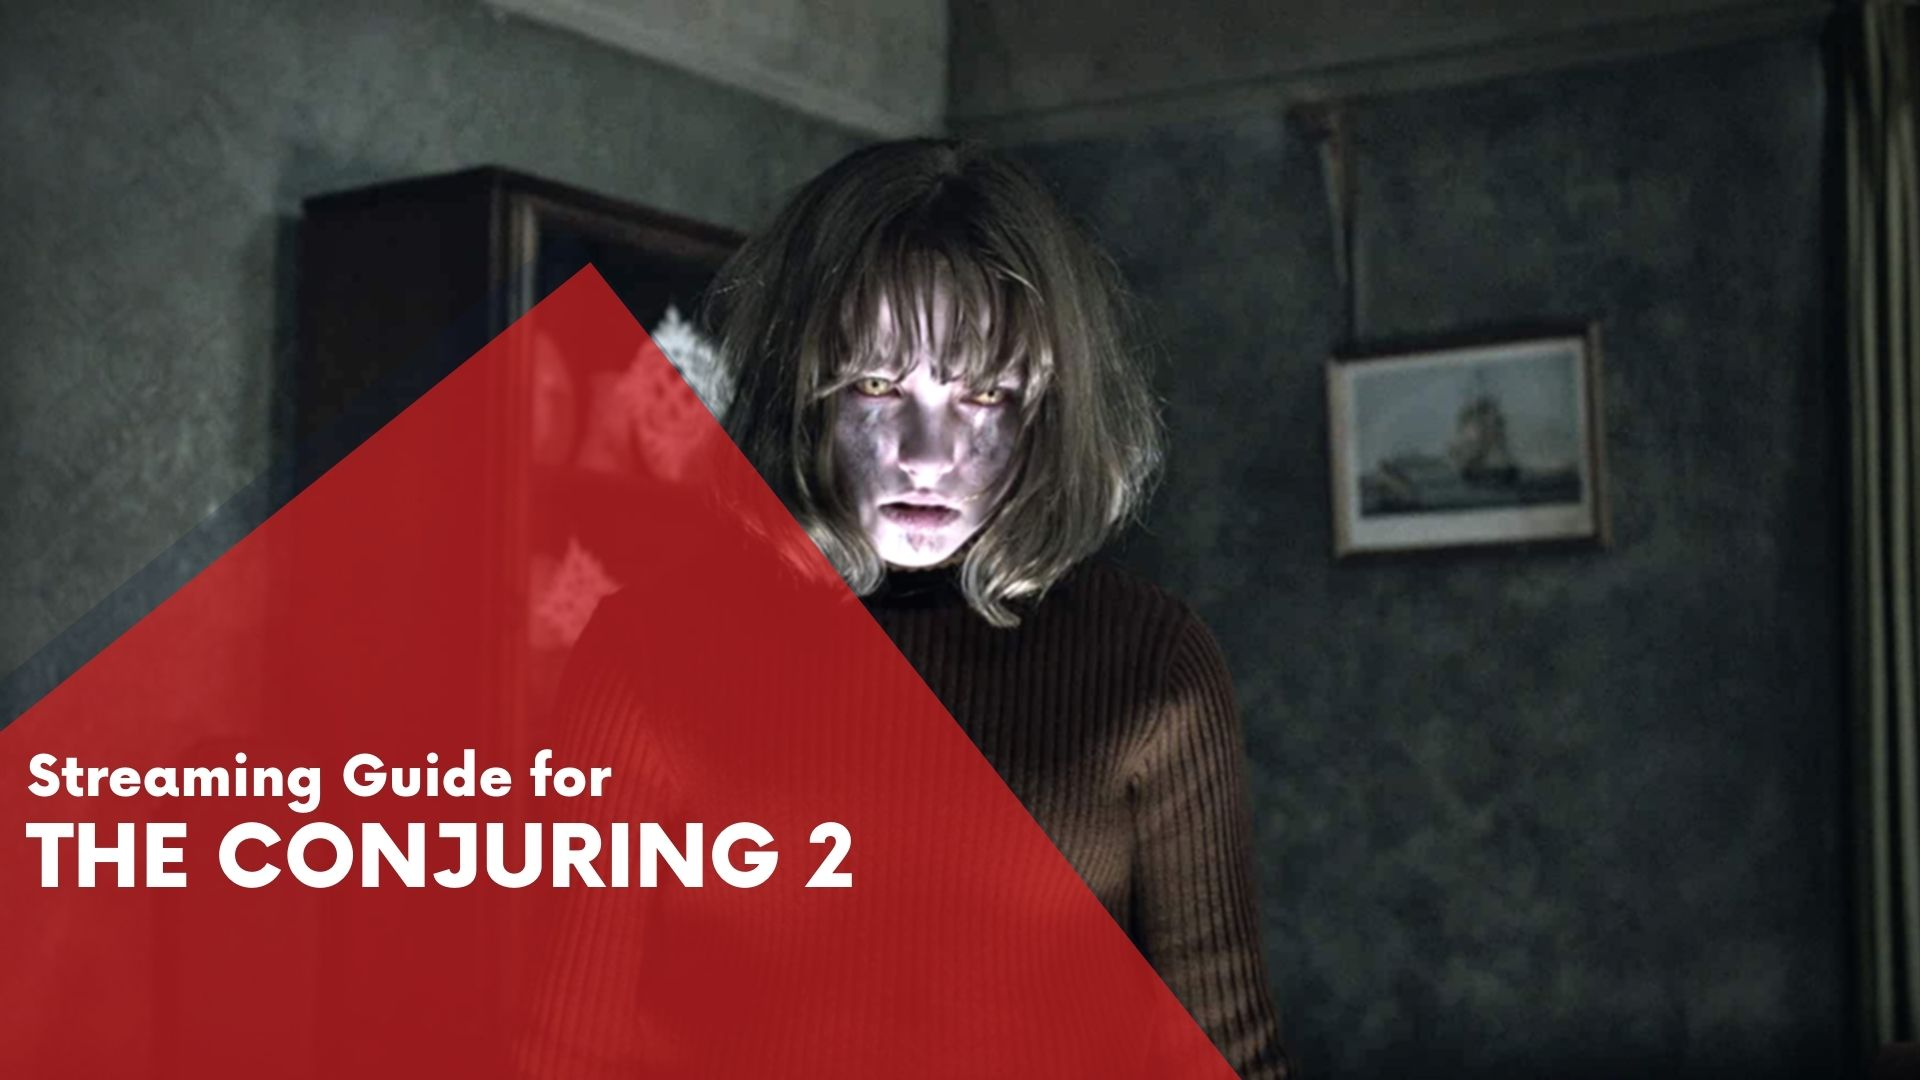 The Conjuring 2 Streaming Guide